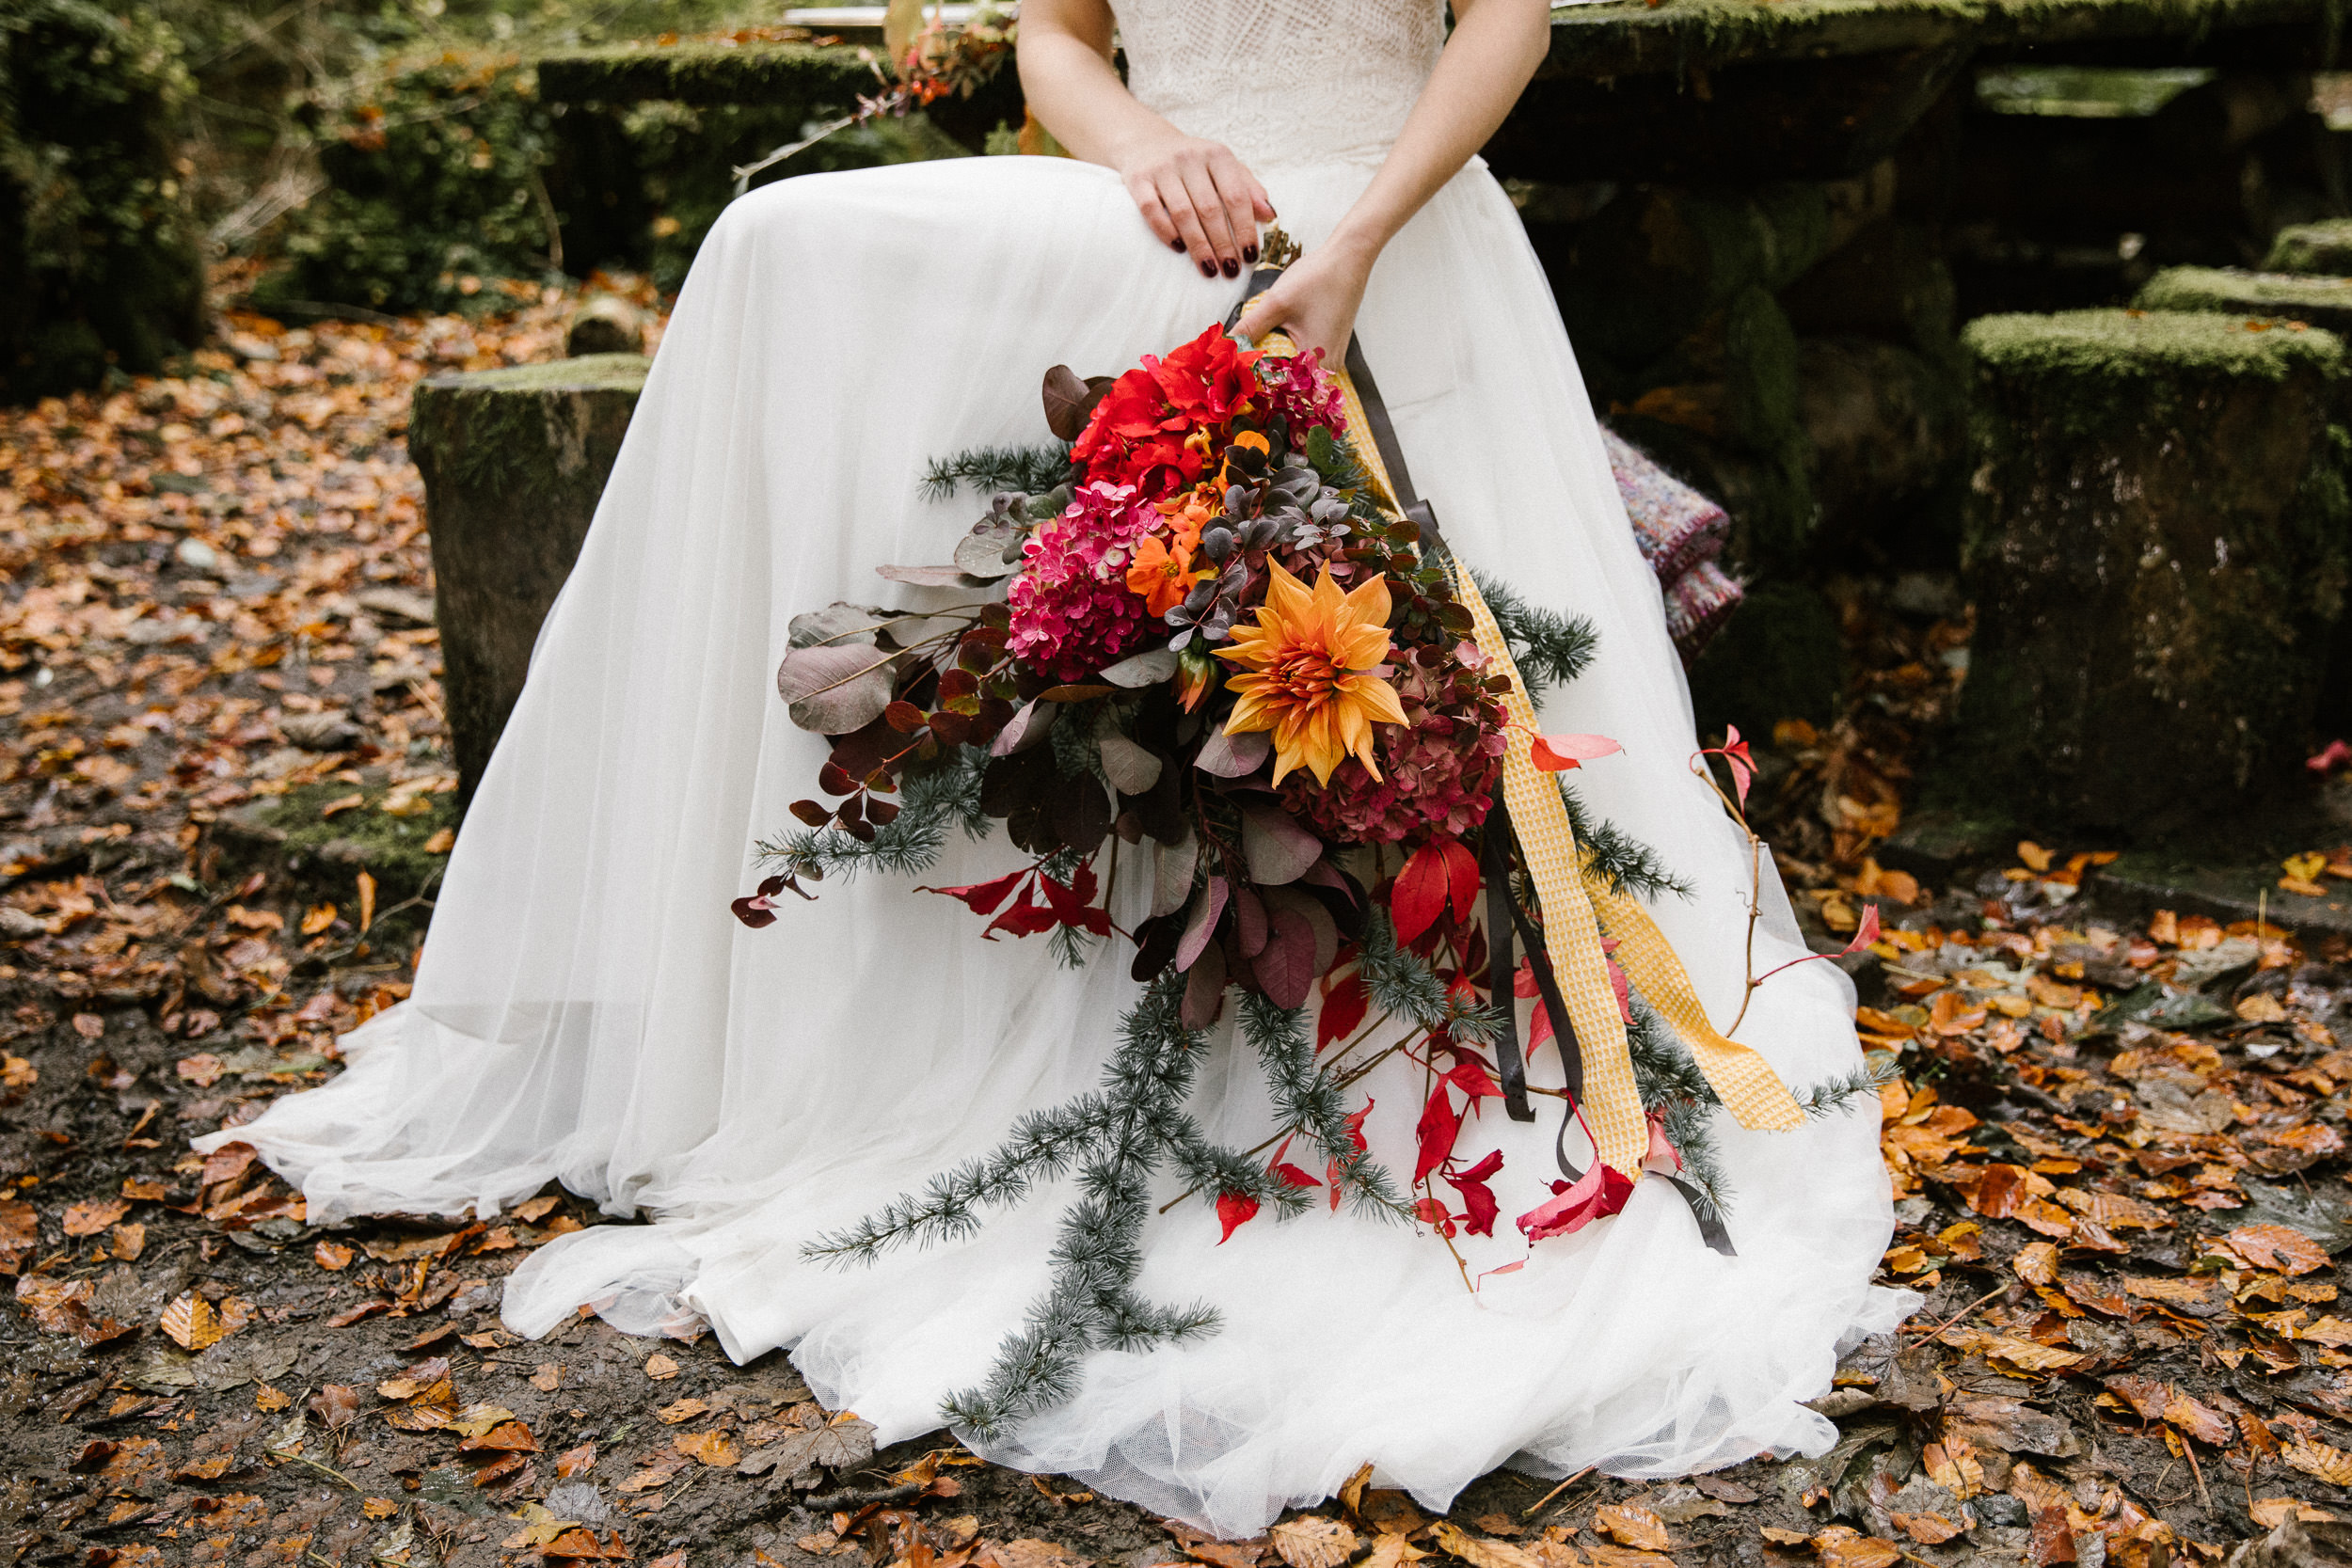 clairebyrnephotography-styled-shoot-huntingbrook-gardens-inspiration-weddings-woods-forest-42.jpg